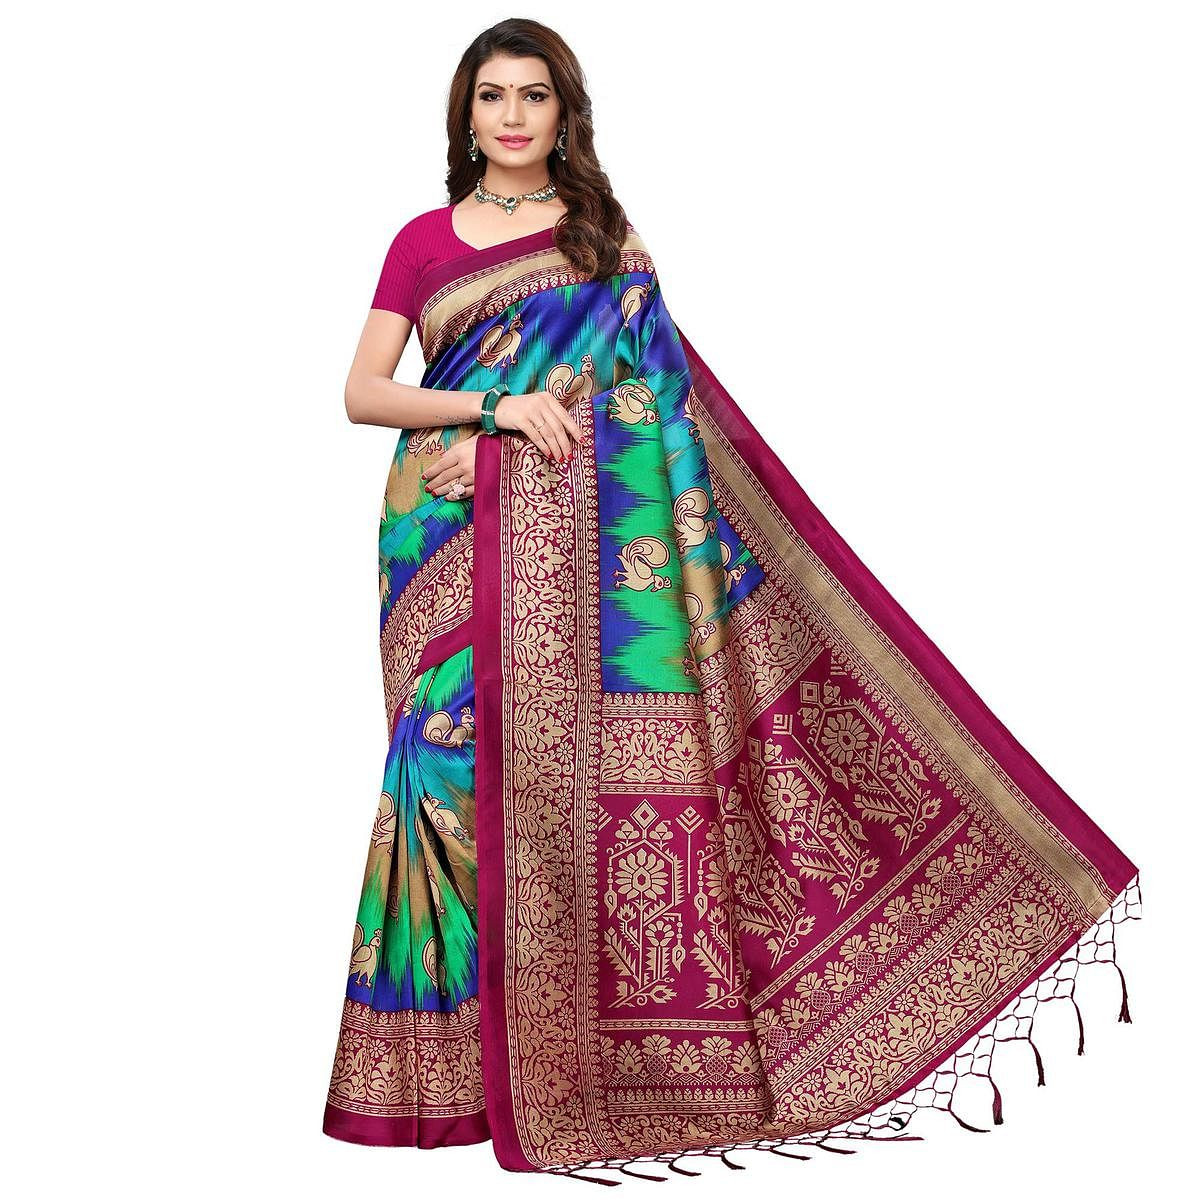 Flattering Magenta Pink - Multi Colored Festive Wear Printed Art Silk Saree With Tassel